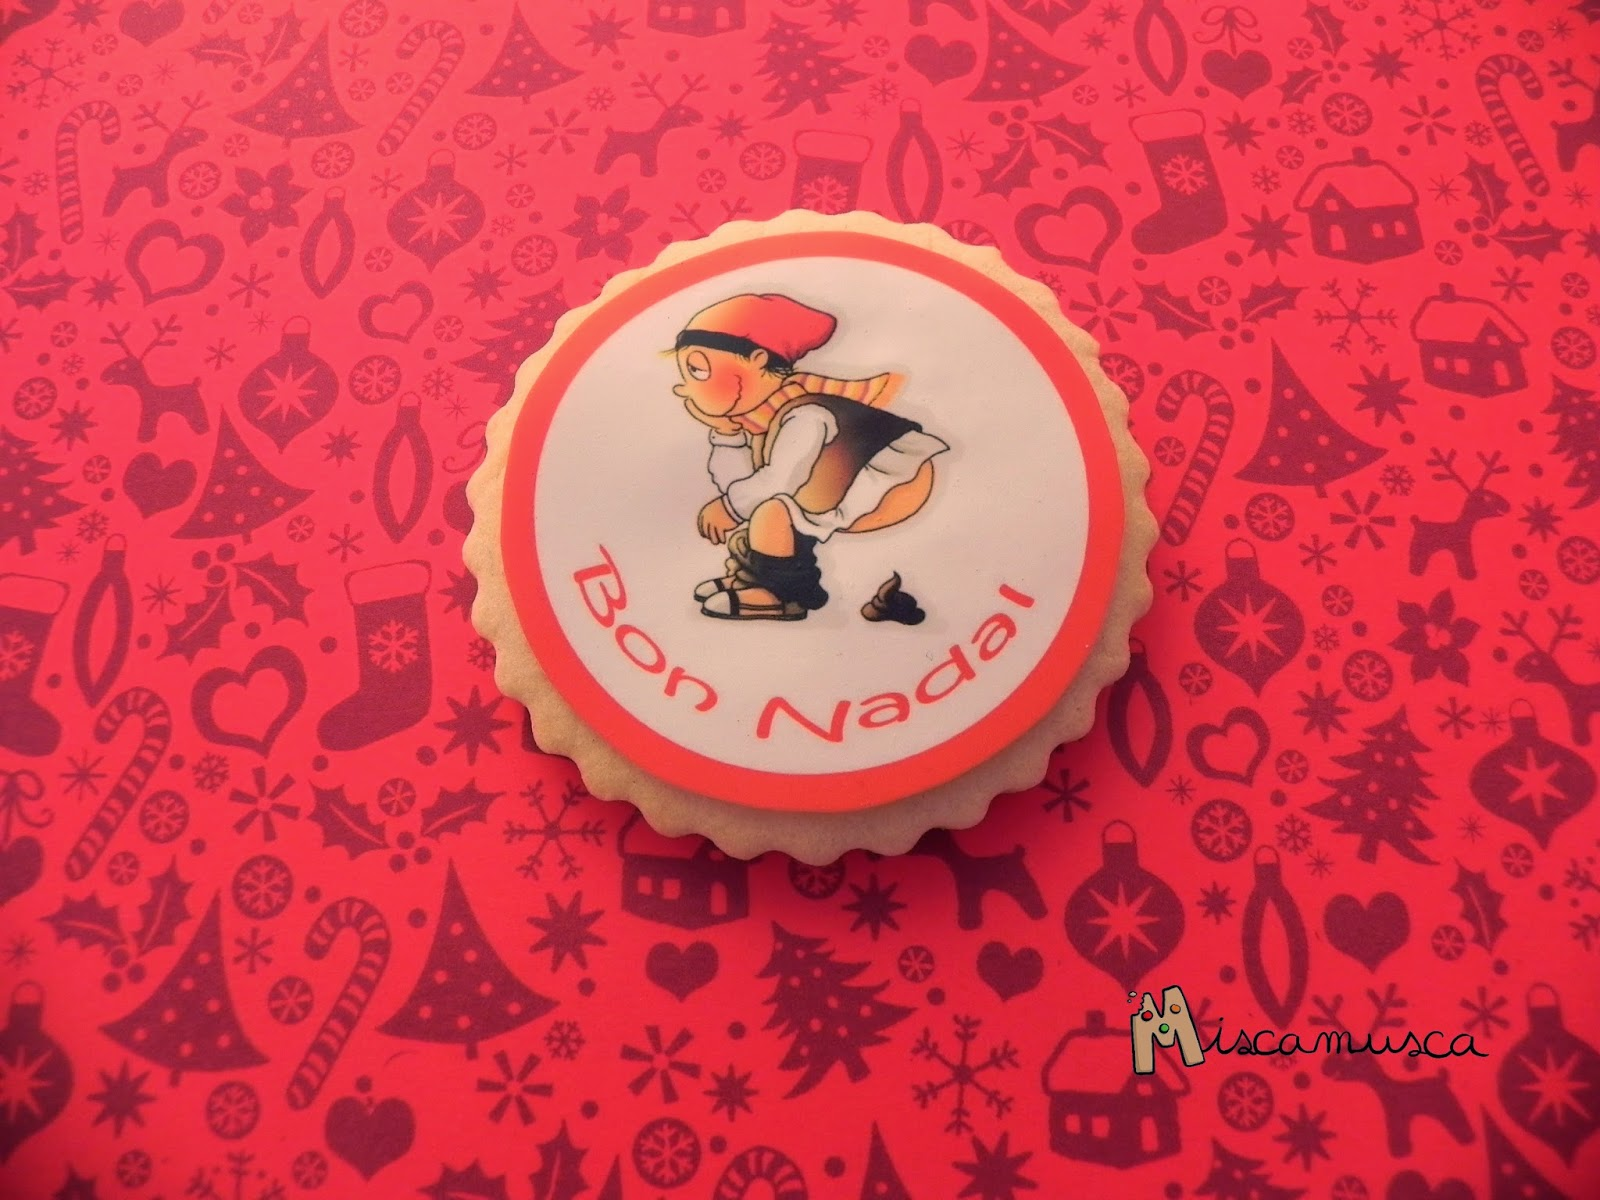 Galleta Caganer